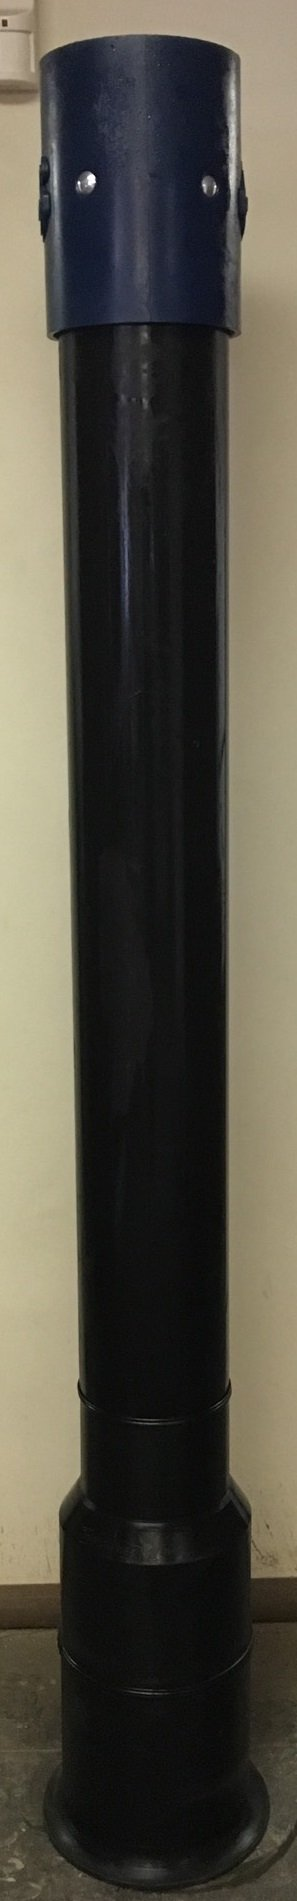 6'' Poly Dig Tube with Flat Flange